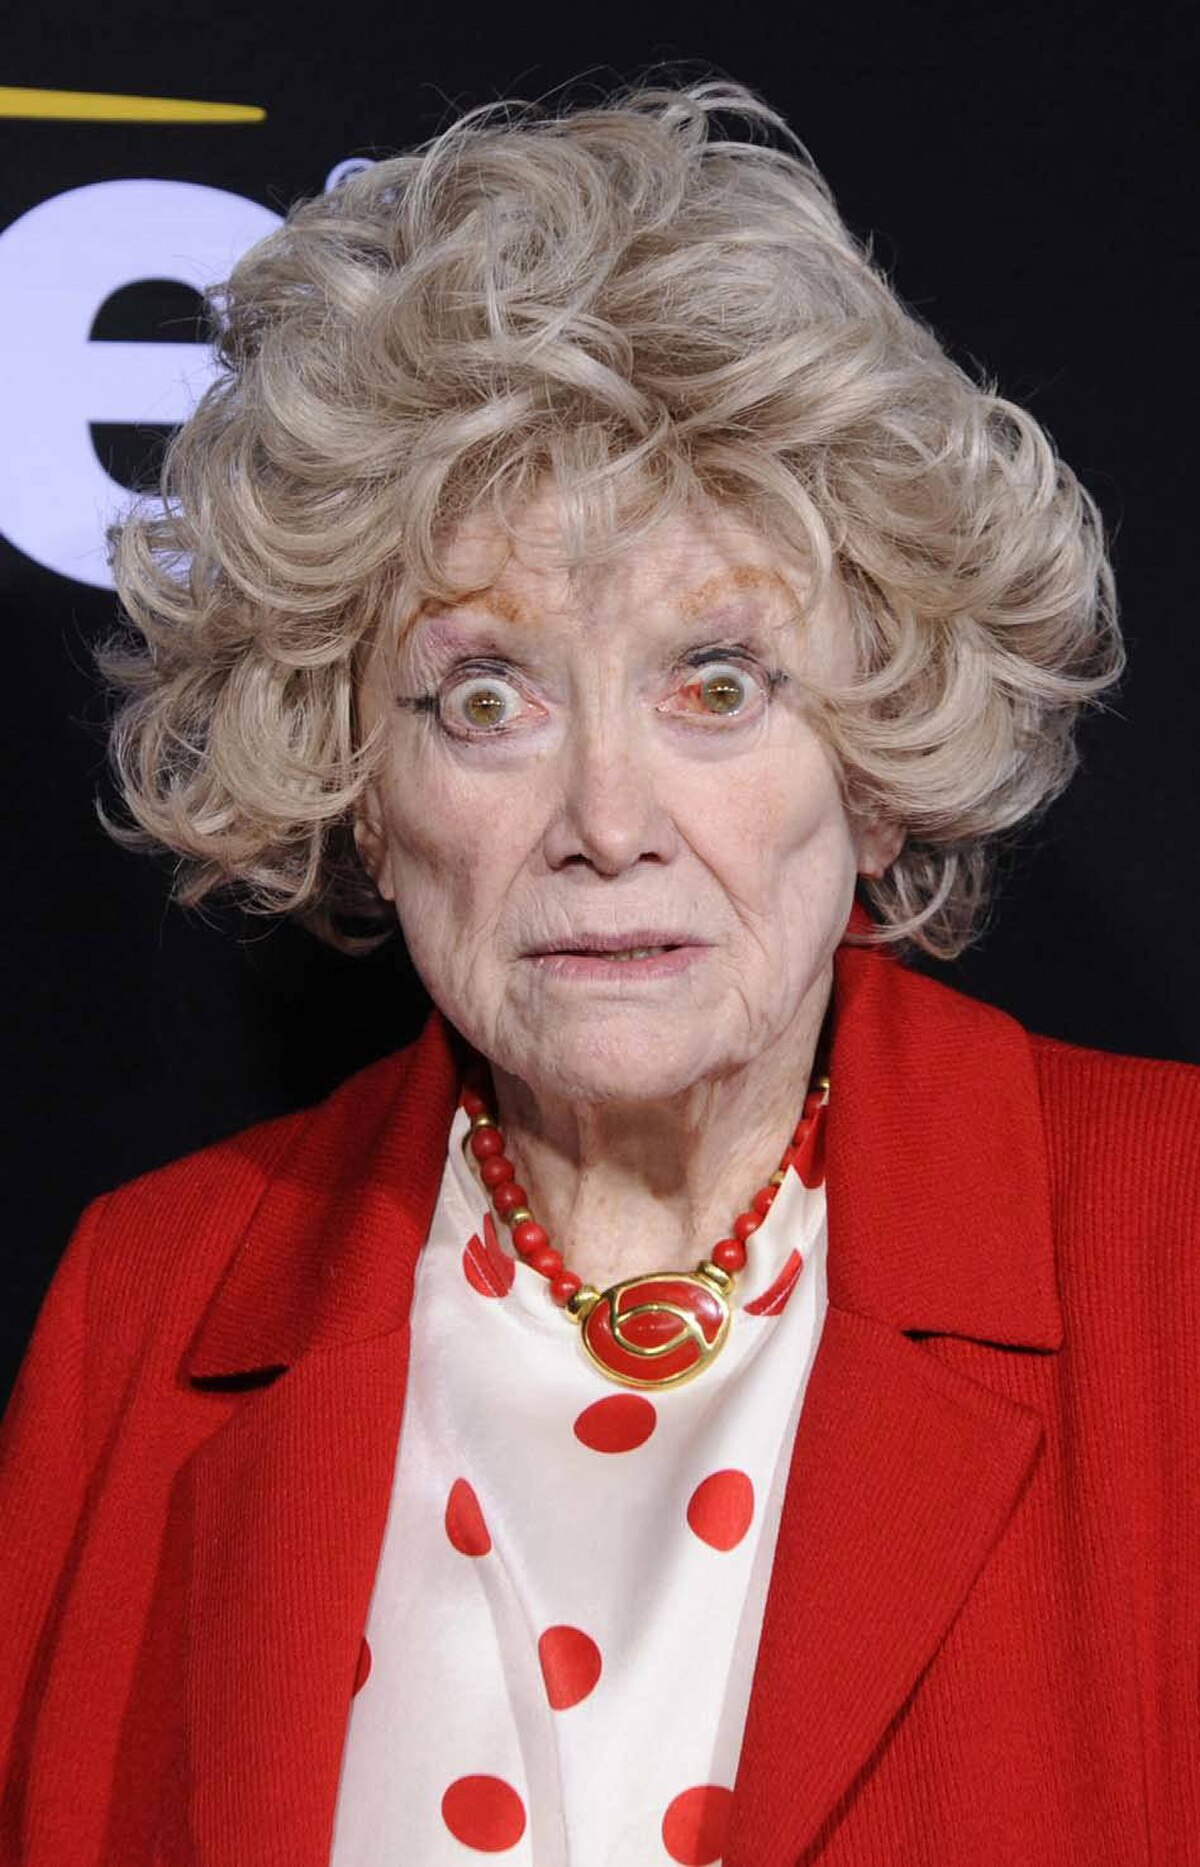 """Yes, Phyllis Diller attending a screening of the documentary """"Method to the Madness of Jerry Lewis"""" in Los Angeles last week, that just happened."""